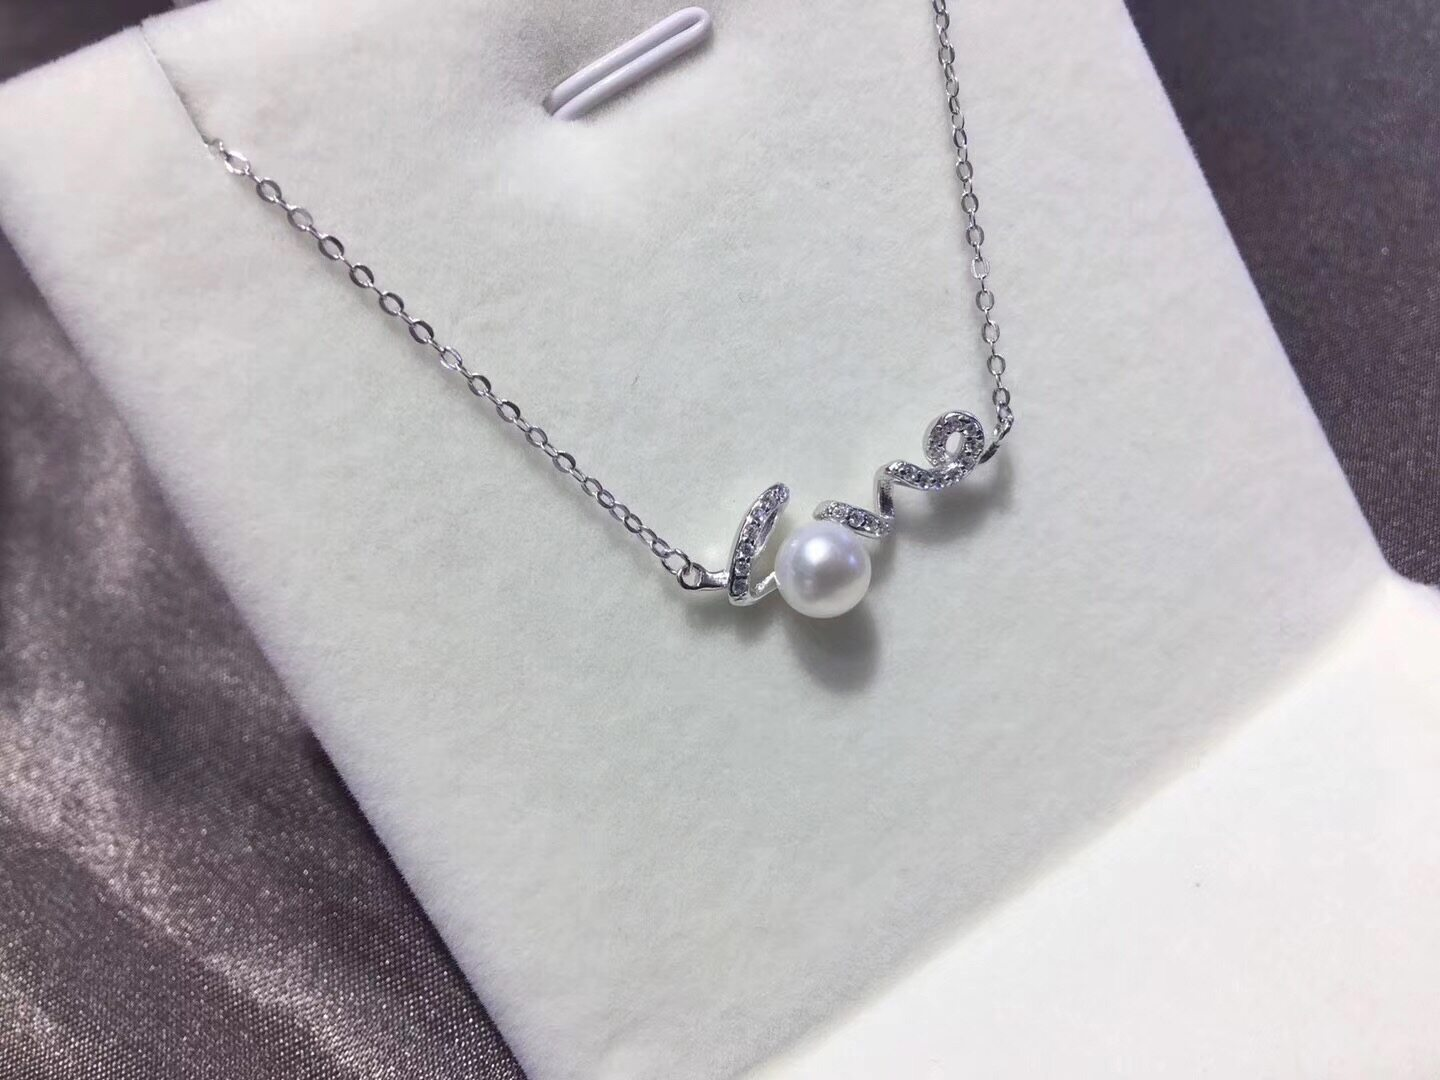 Pearl Jewelry Pendant Mounts with Chain,Real Sterling Silver 925  1